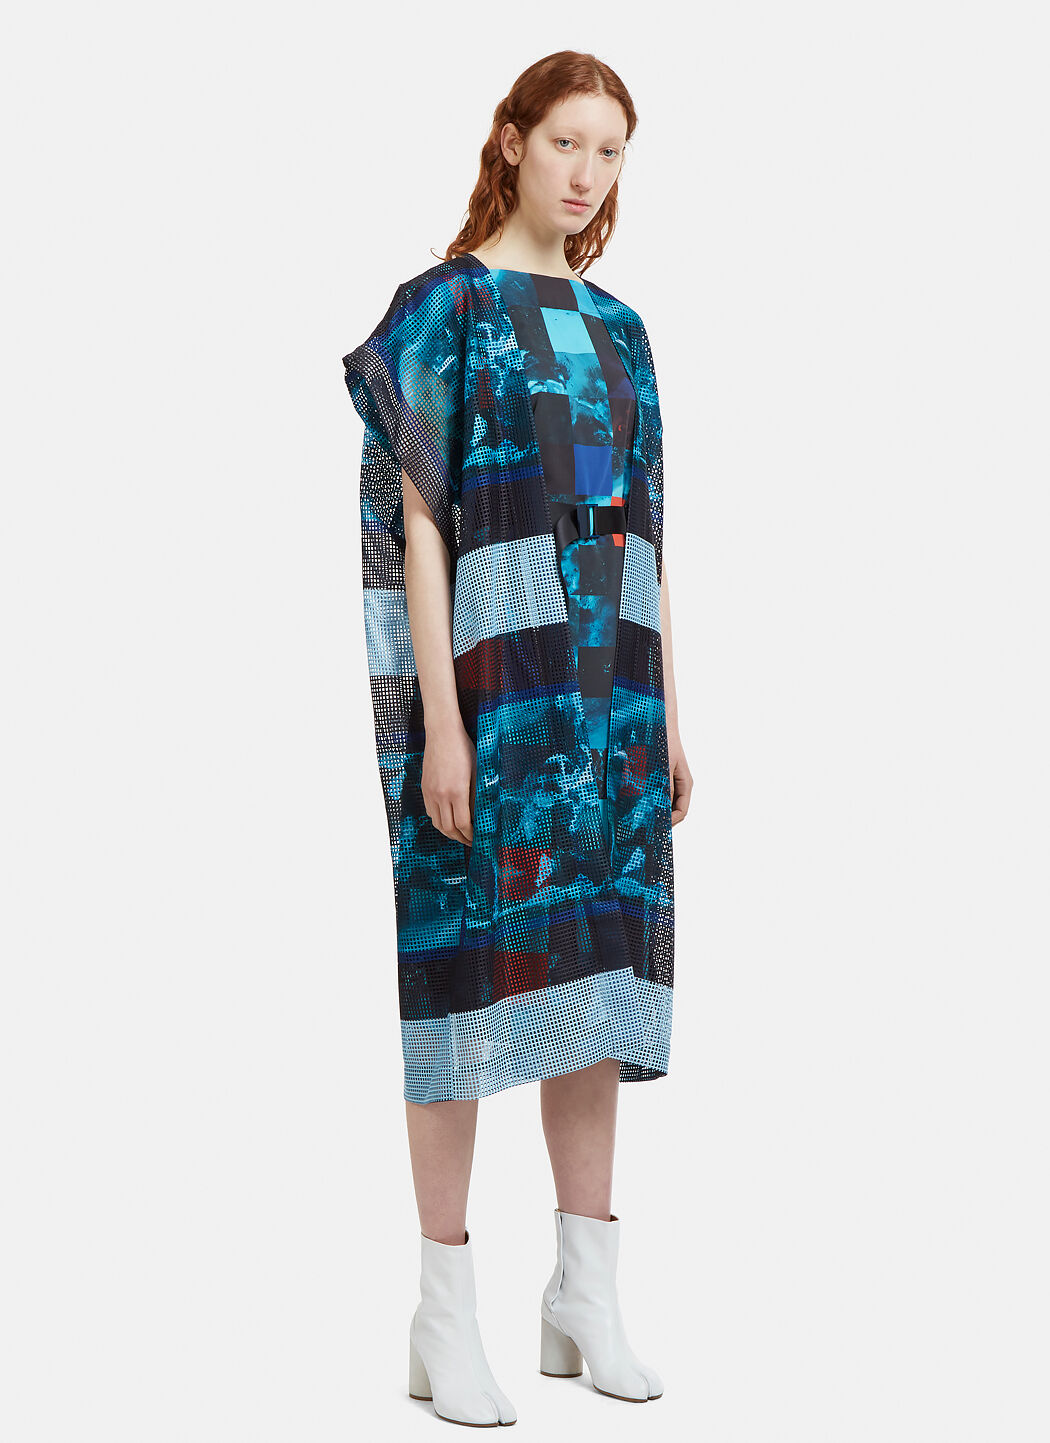 Release Dates Cheap Price Spectrum Mesh Dress Issey Miyake Outlet Cheapest Price Shopping Online For Sale Clearance Ebay LBNErhkmLB